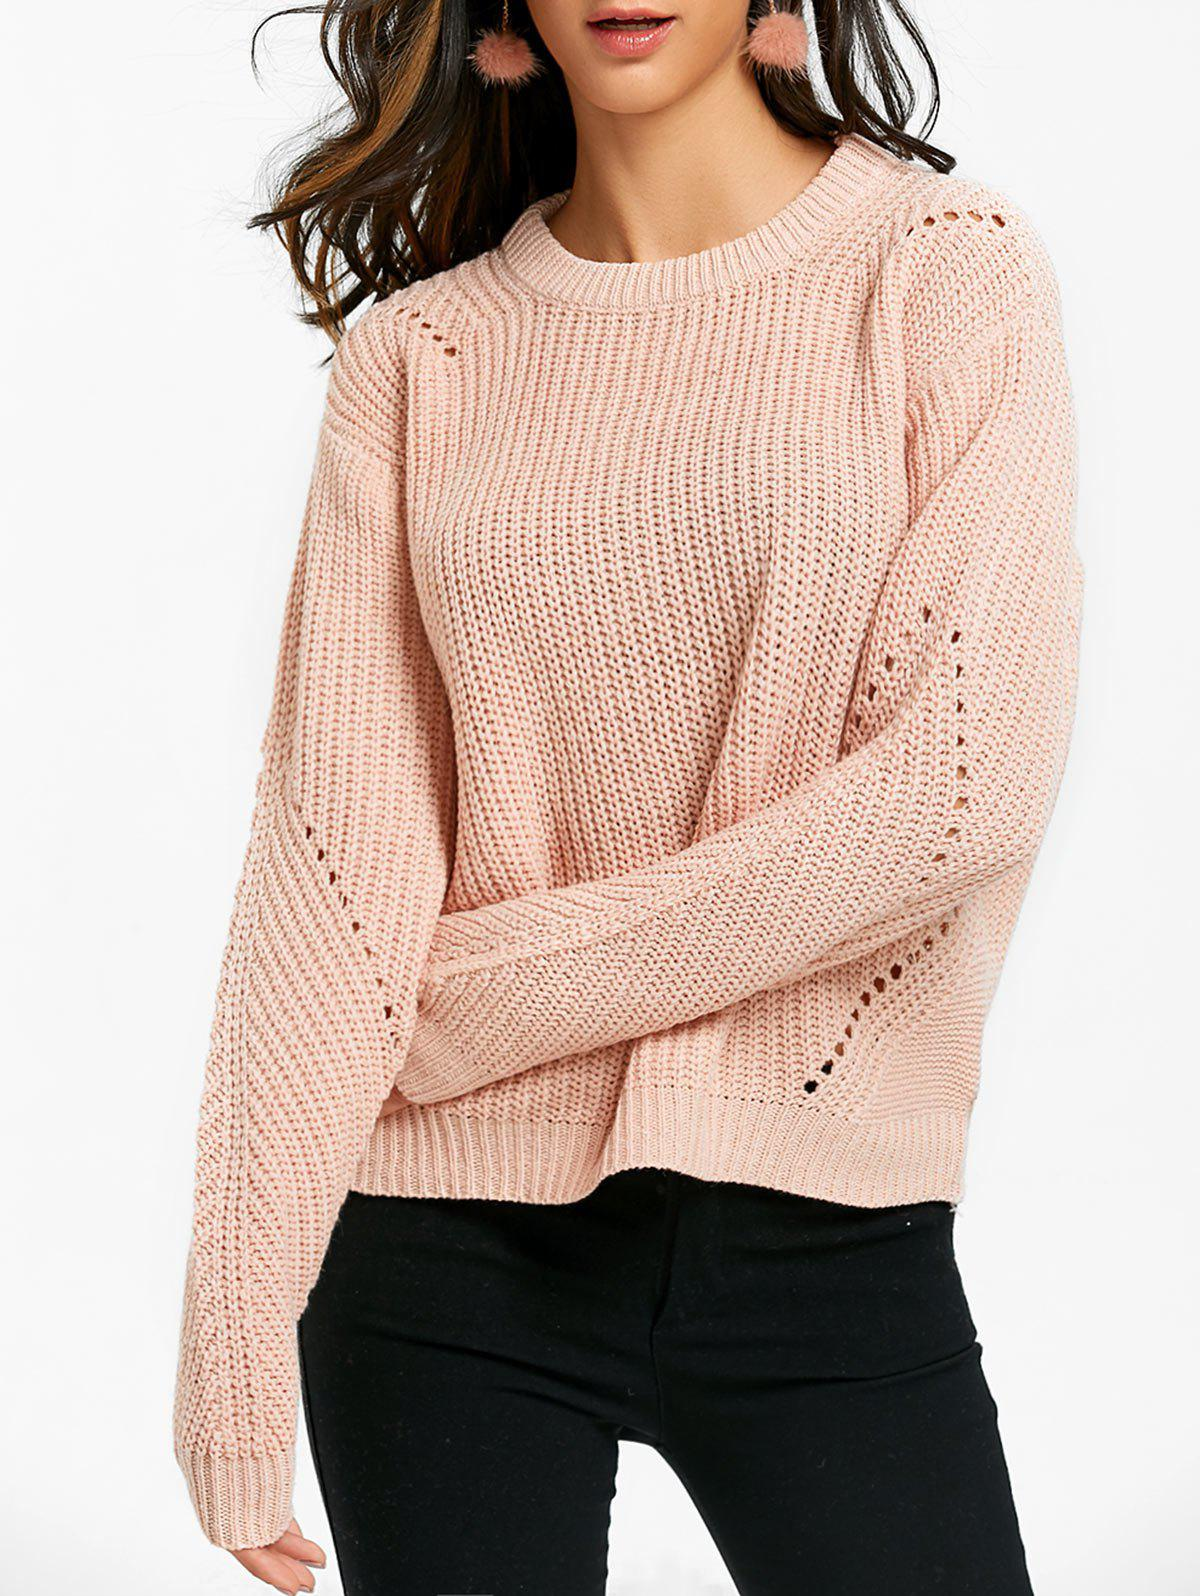 Unique Crew Neck Hollow Out Knit Chunky Sweater